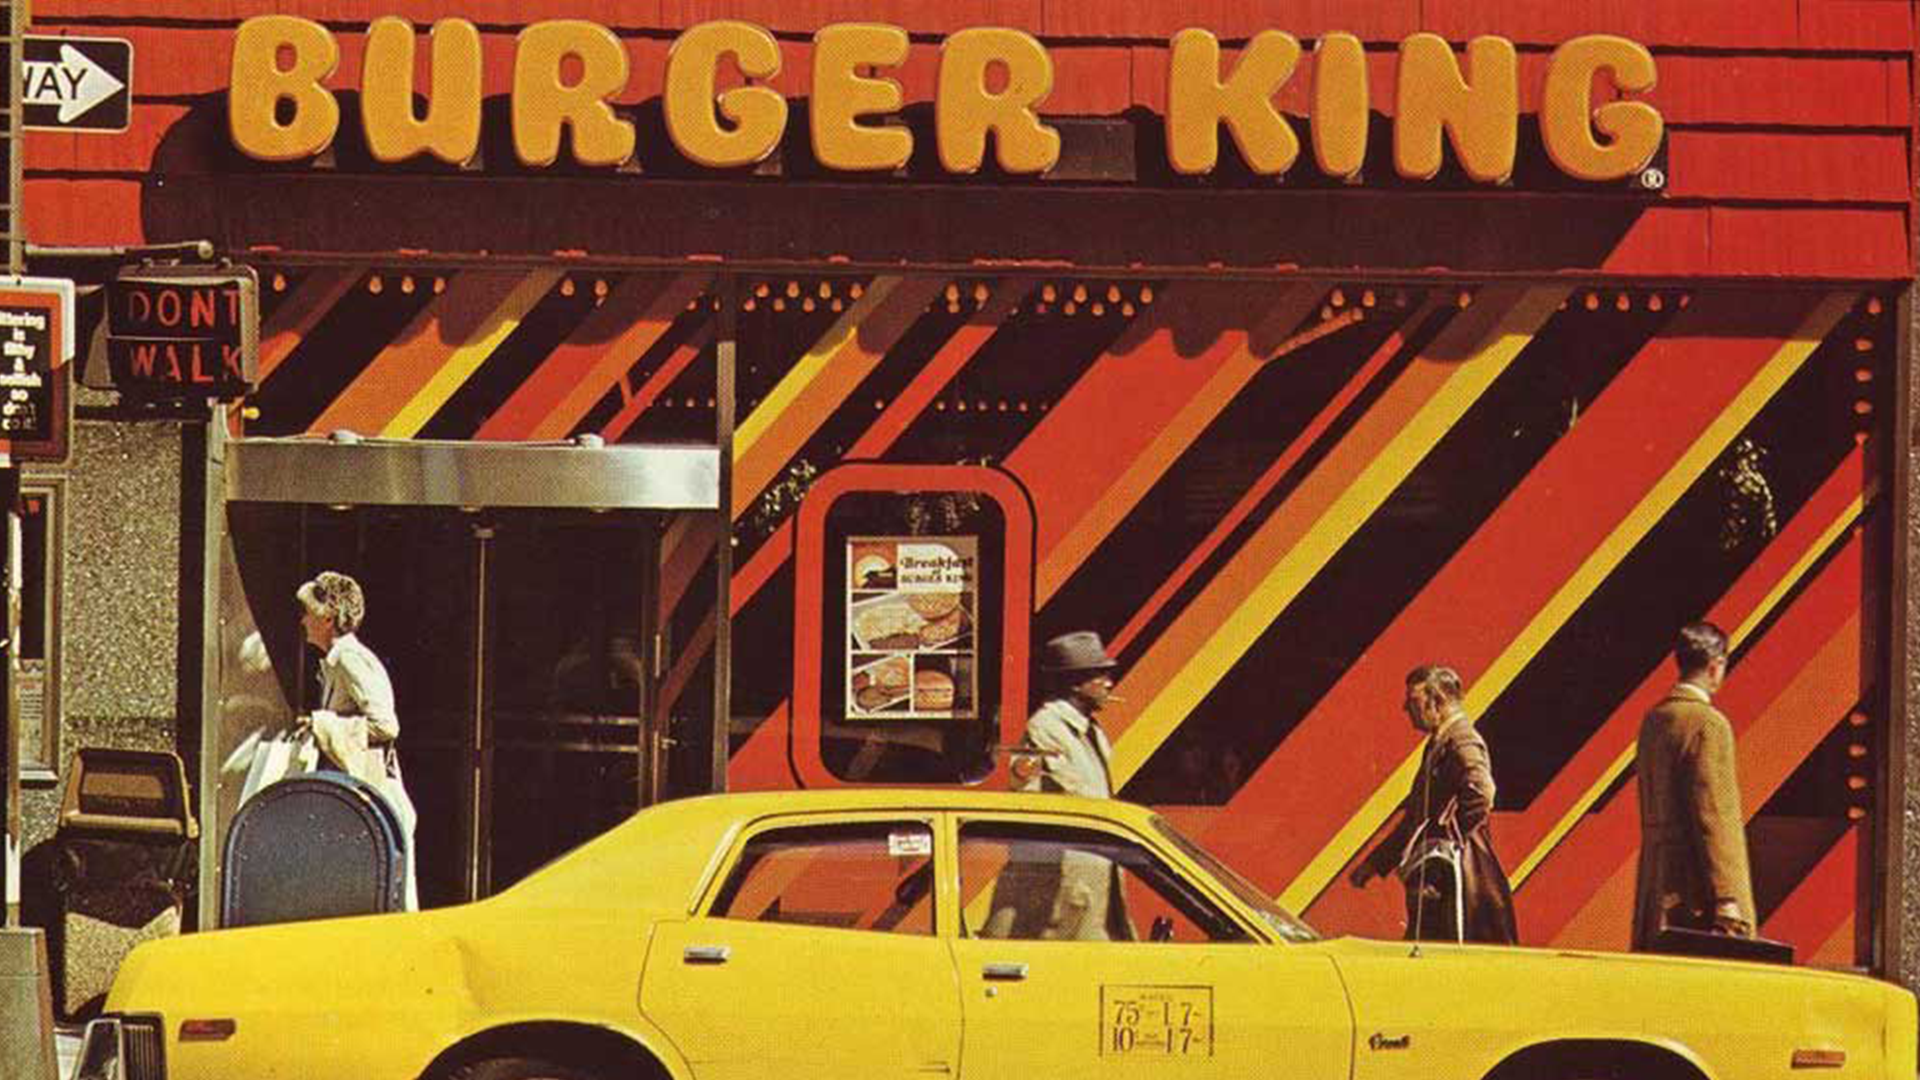 yellowy orange Burger King exterior in 1970s